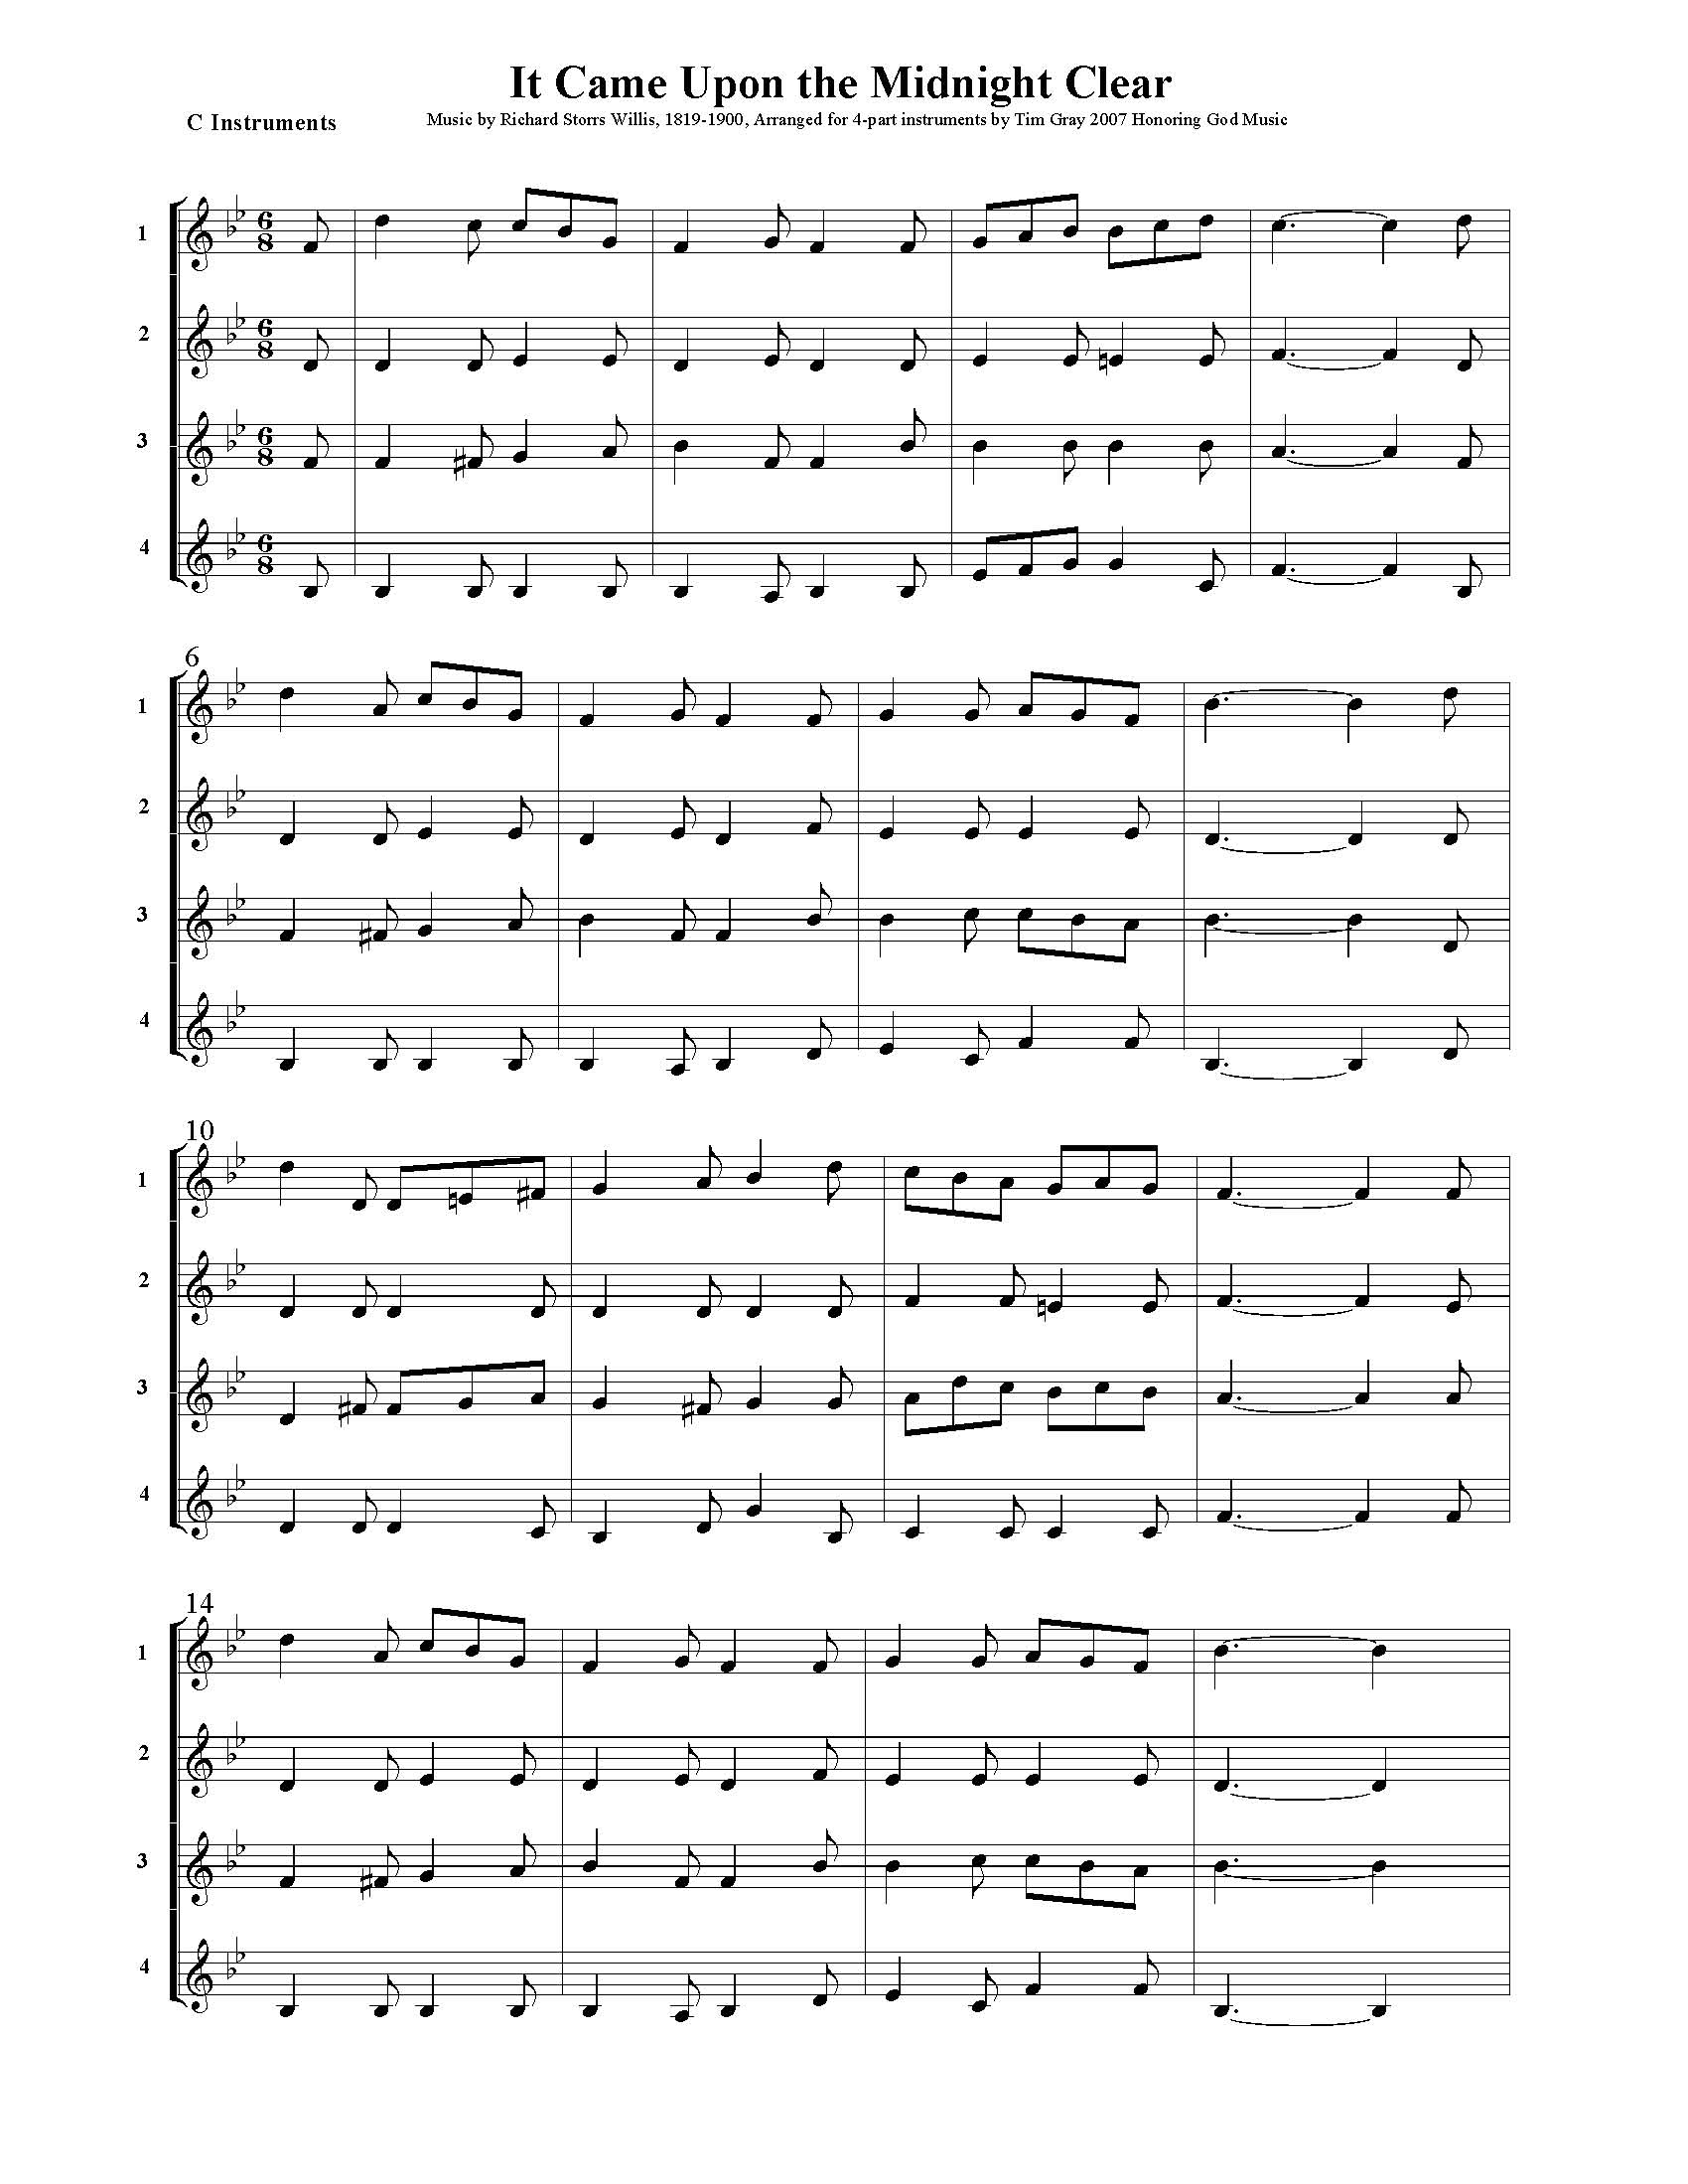 It Came Upon the Midnight Clear - 4 Hymns sample page at HonoringGodMusic.com